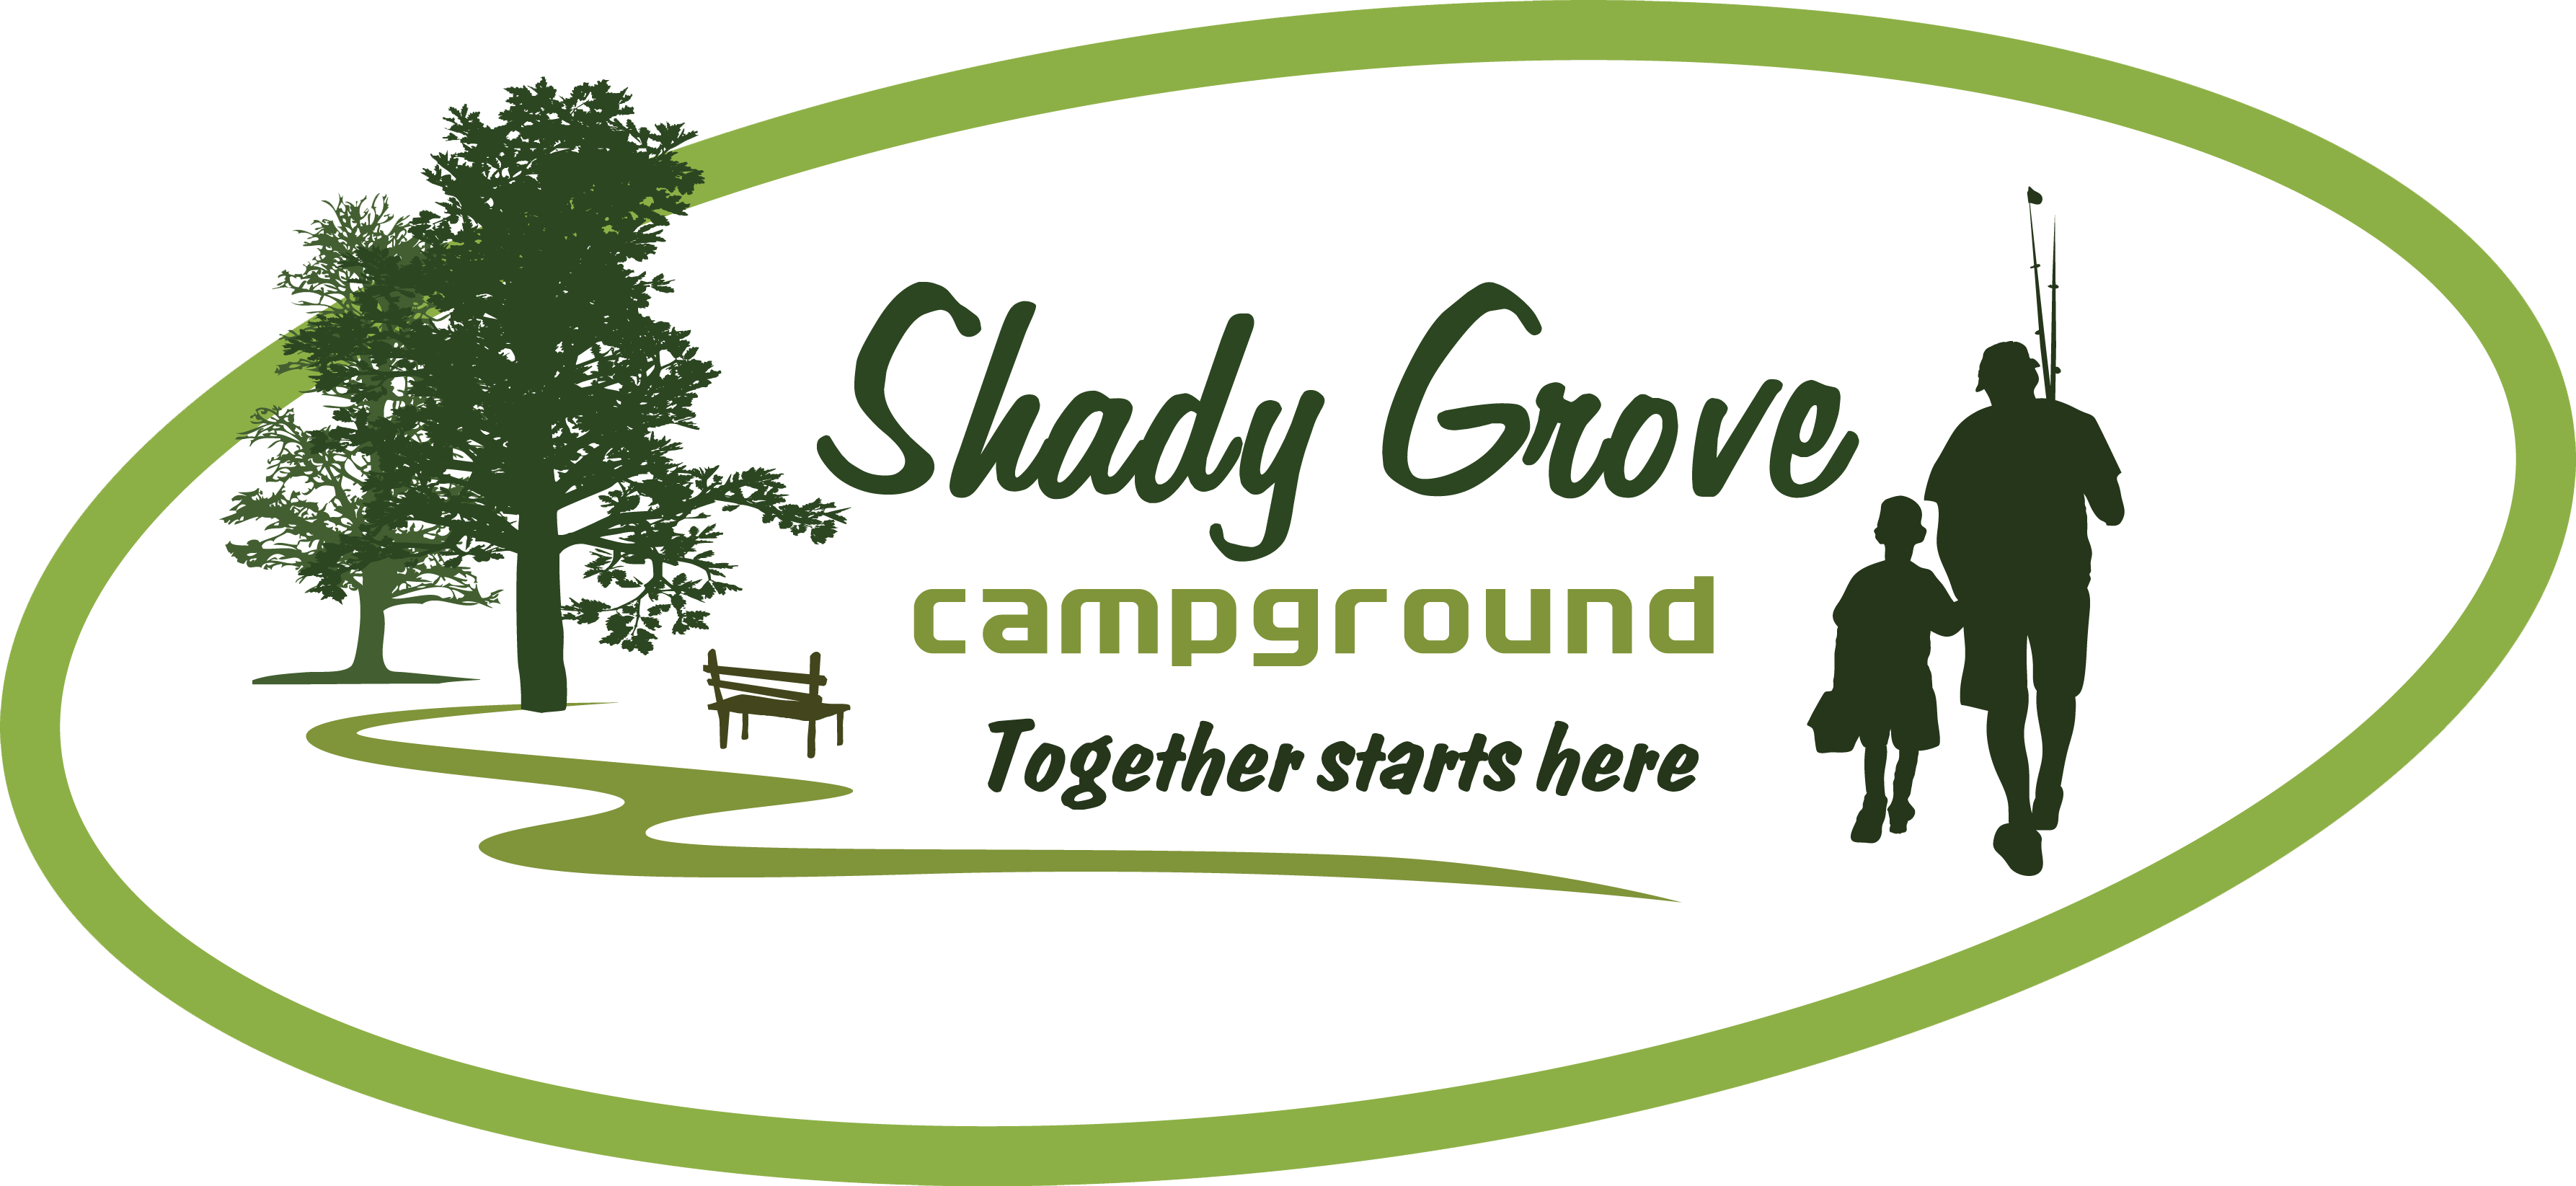 Home shady grove campground. Clipart tent family camp